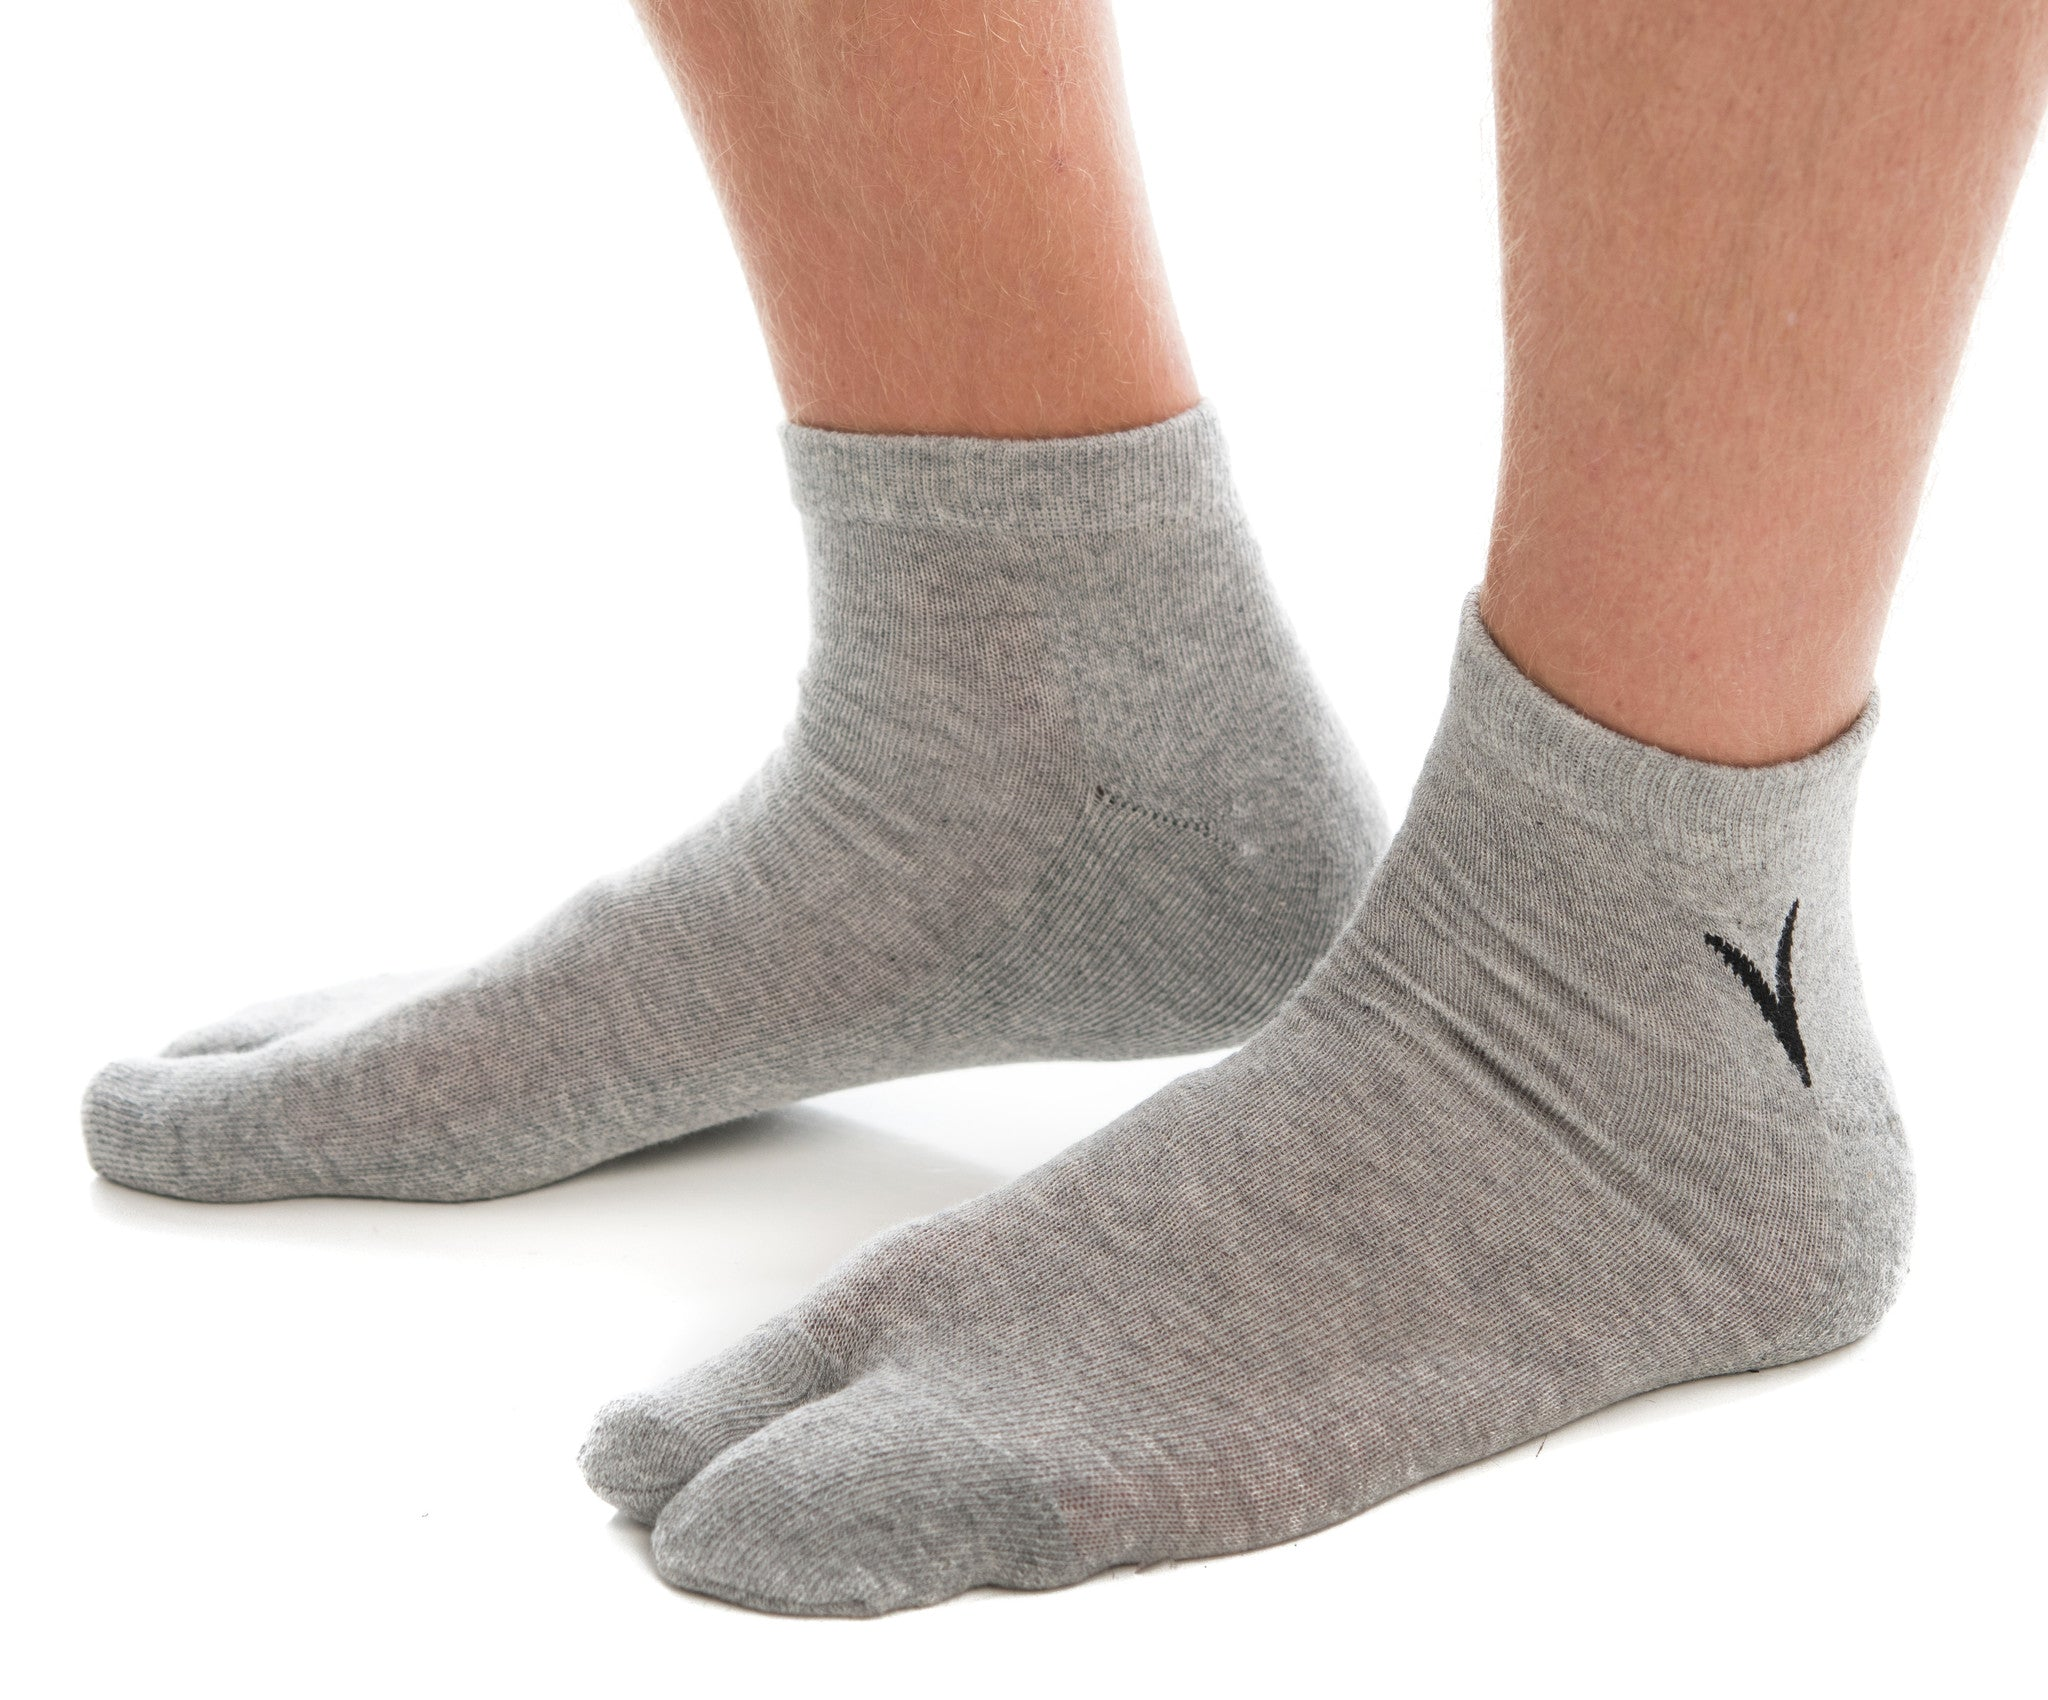 1 Pair - V-Toe Athletic Ankle Height Flip Flop Tabi Big Toe Socks - Black, Grey or White